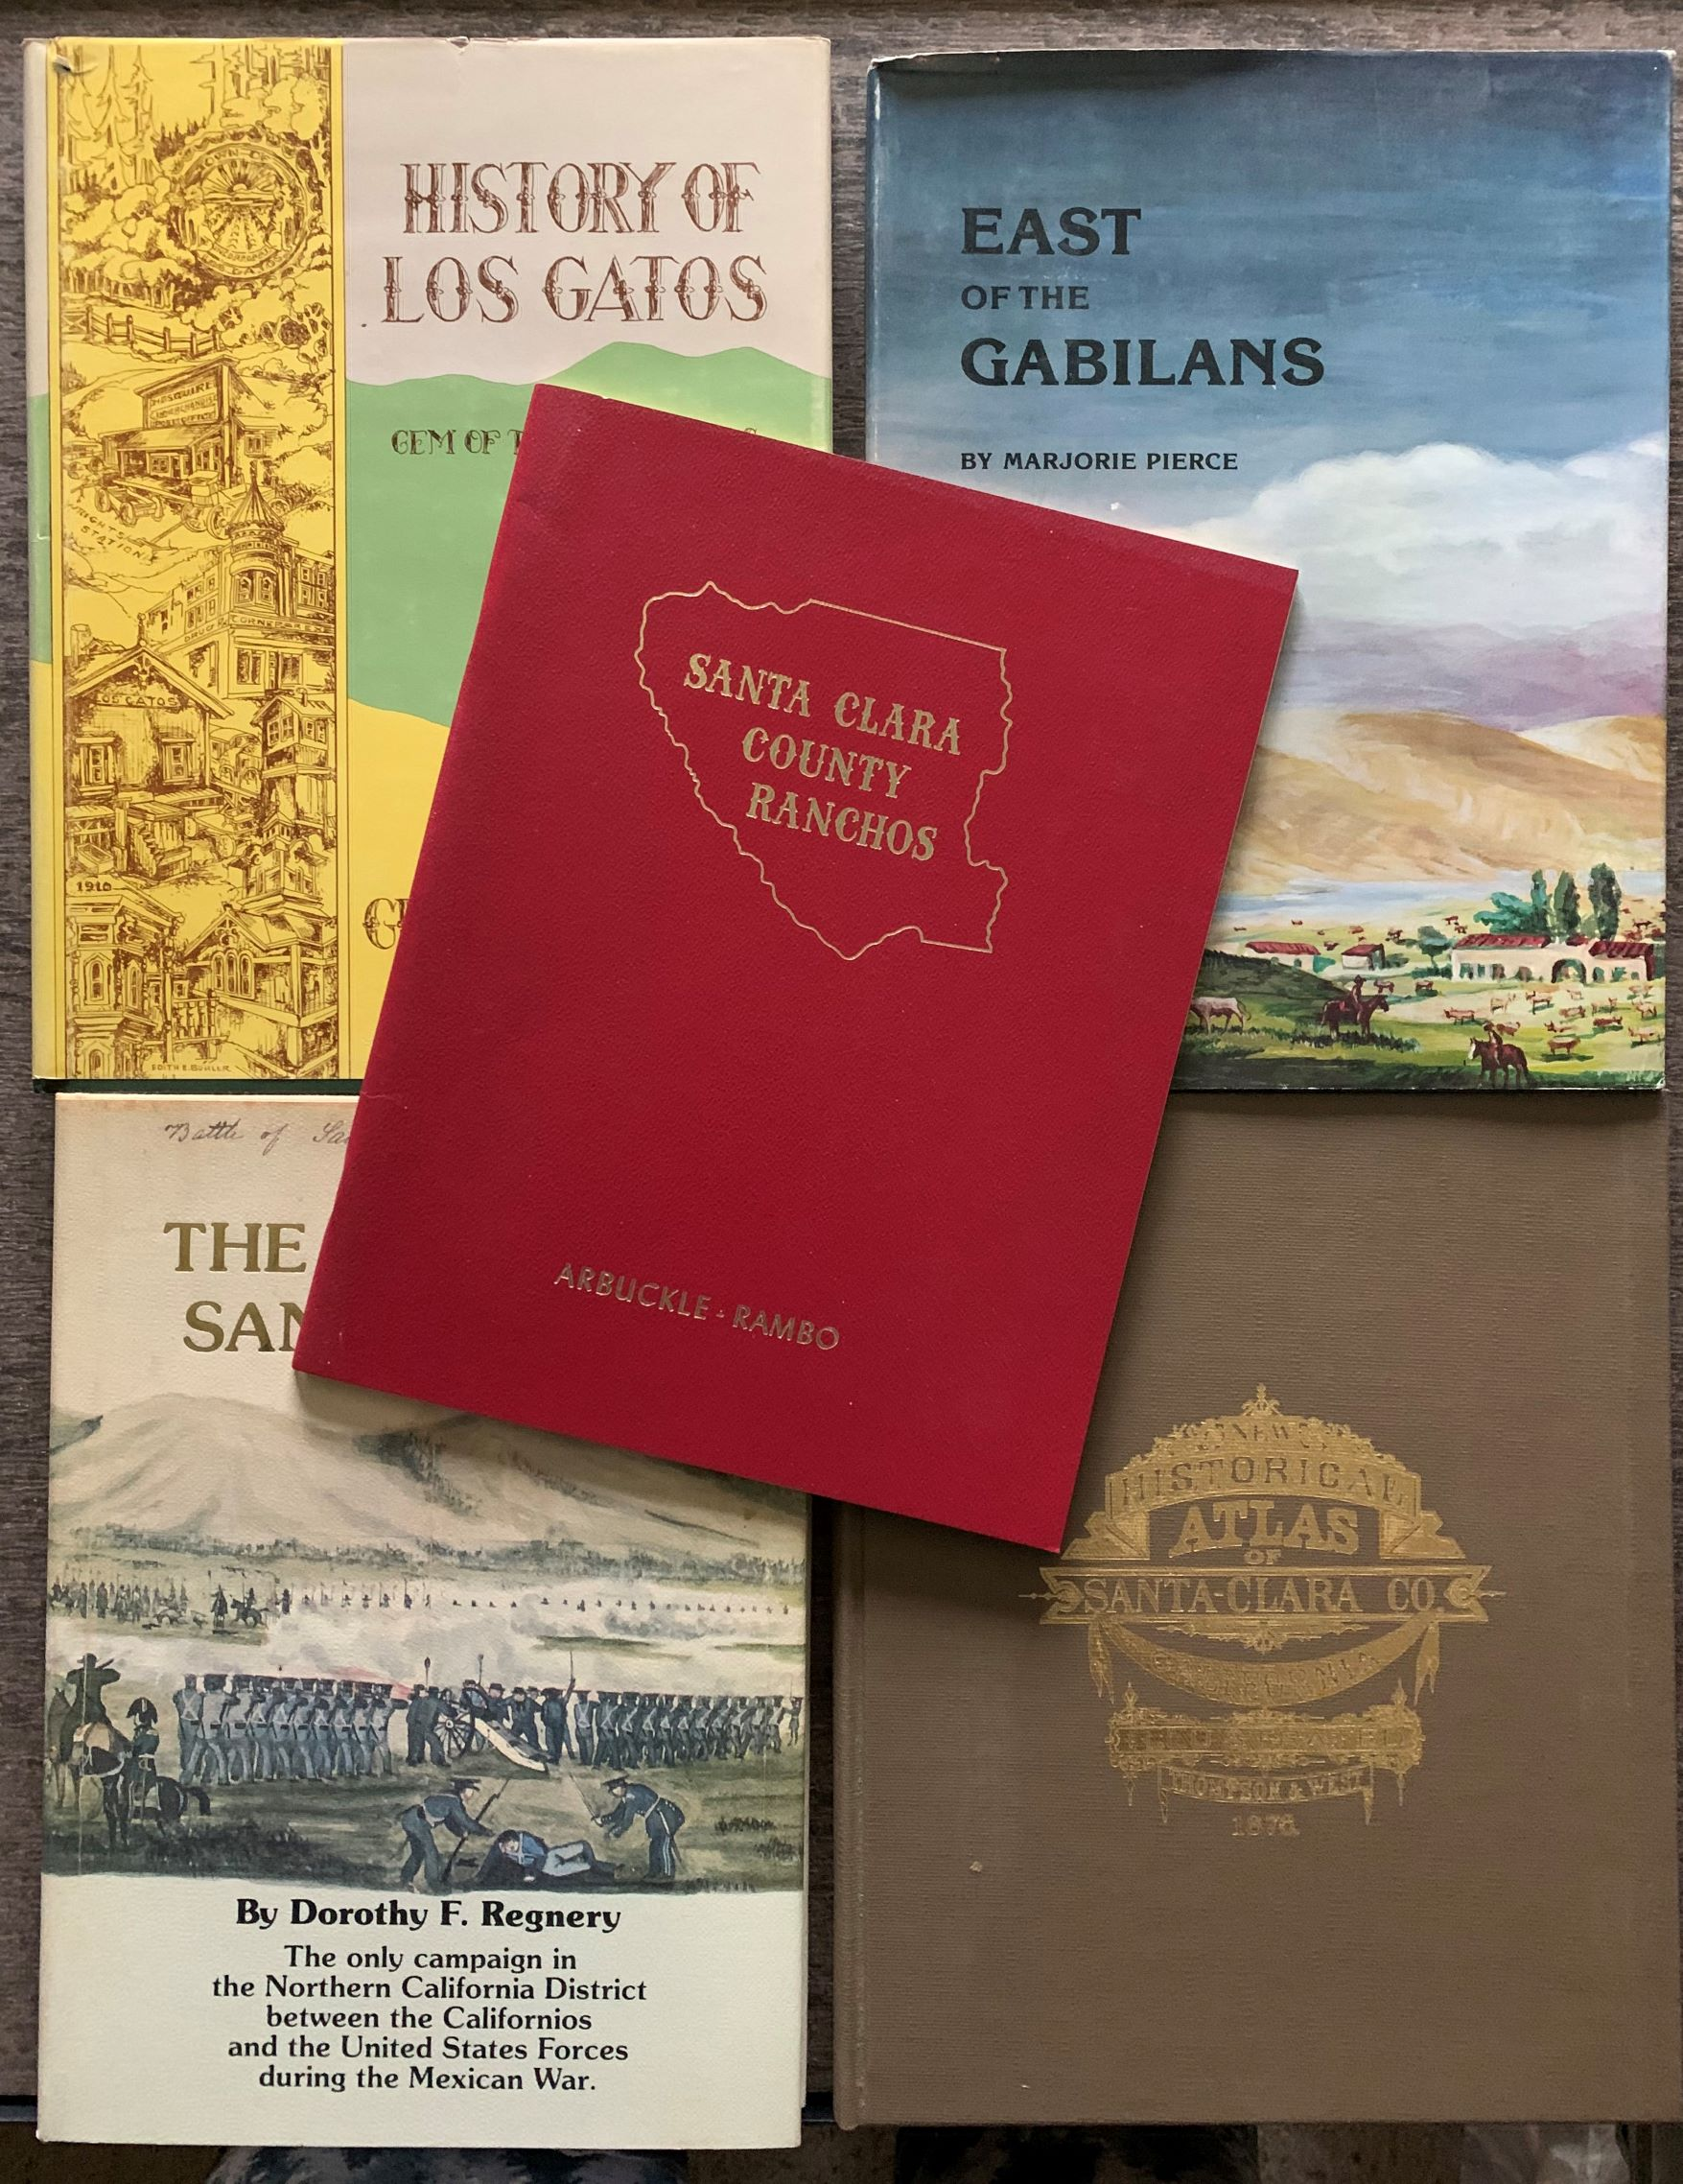 Image for [Five Books] The Battle of Santa Clara; Santa Clara County Ranchos; Historical Atlas Map of Santa Clara County; The History of Los Gatos: Gem of the Foothills; East of the Gabilans, the Ranches, Towns and People. . .